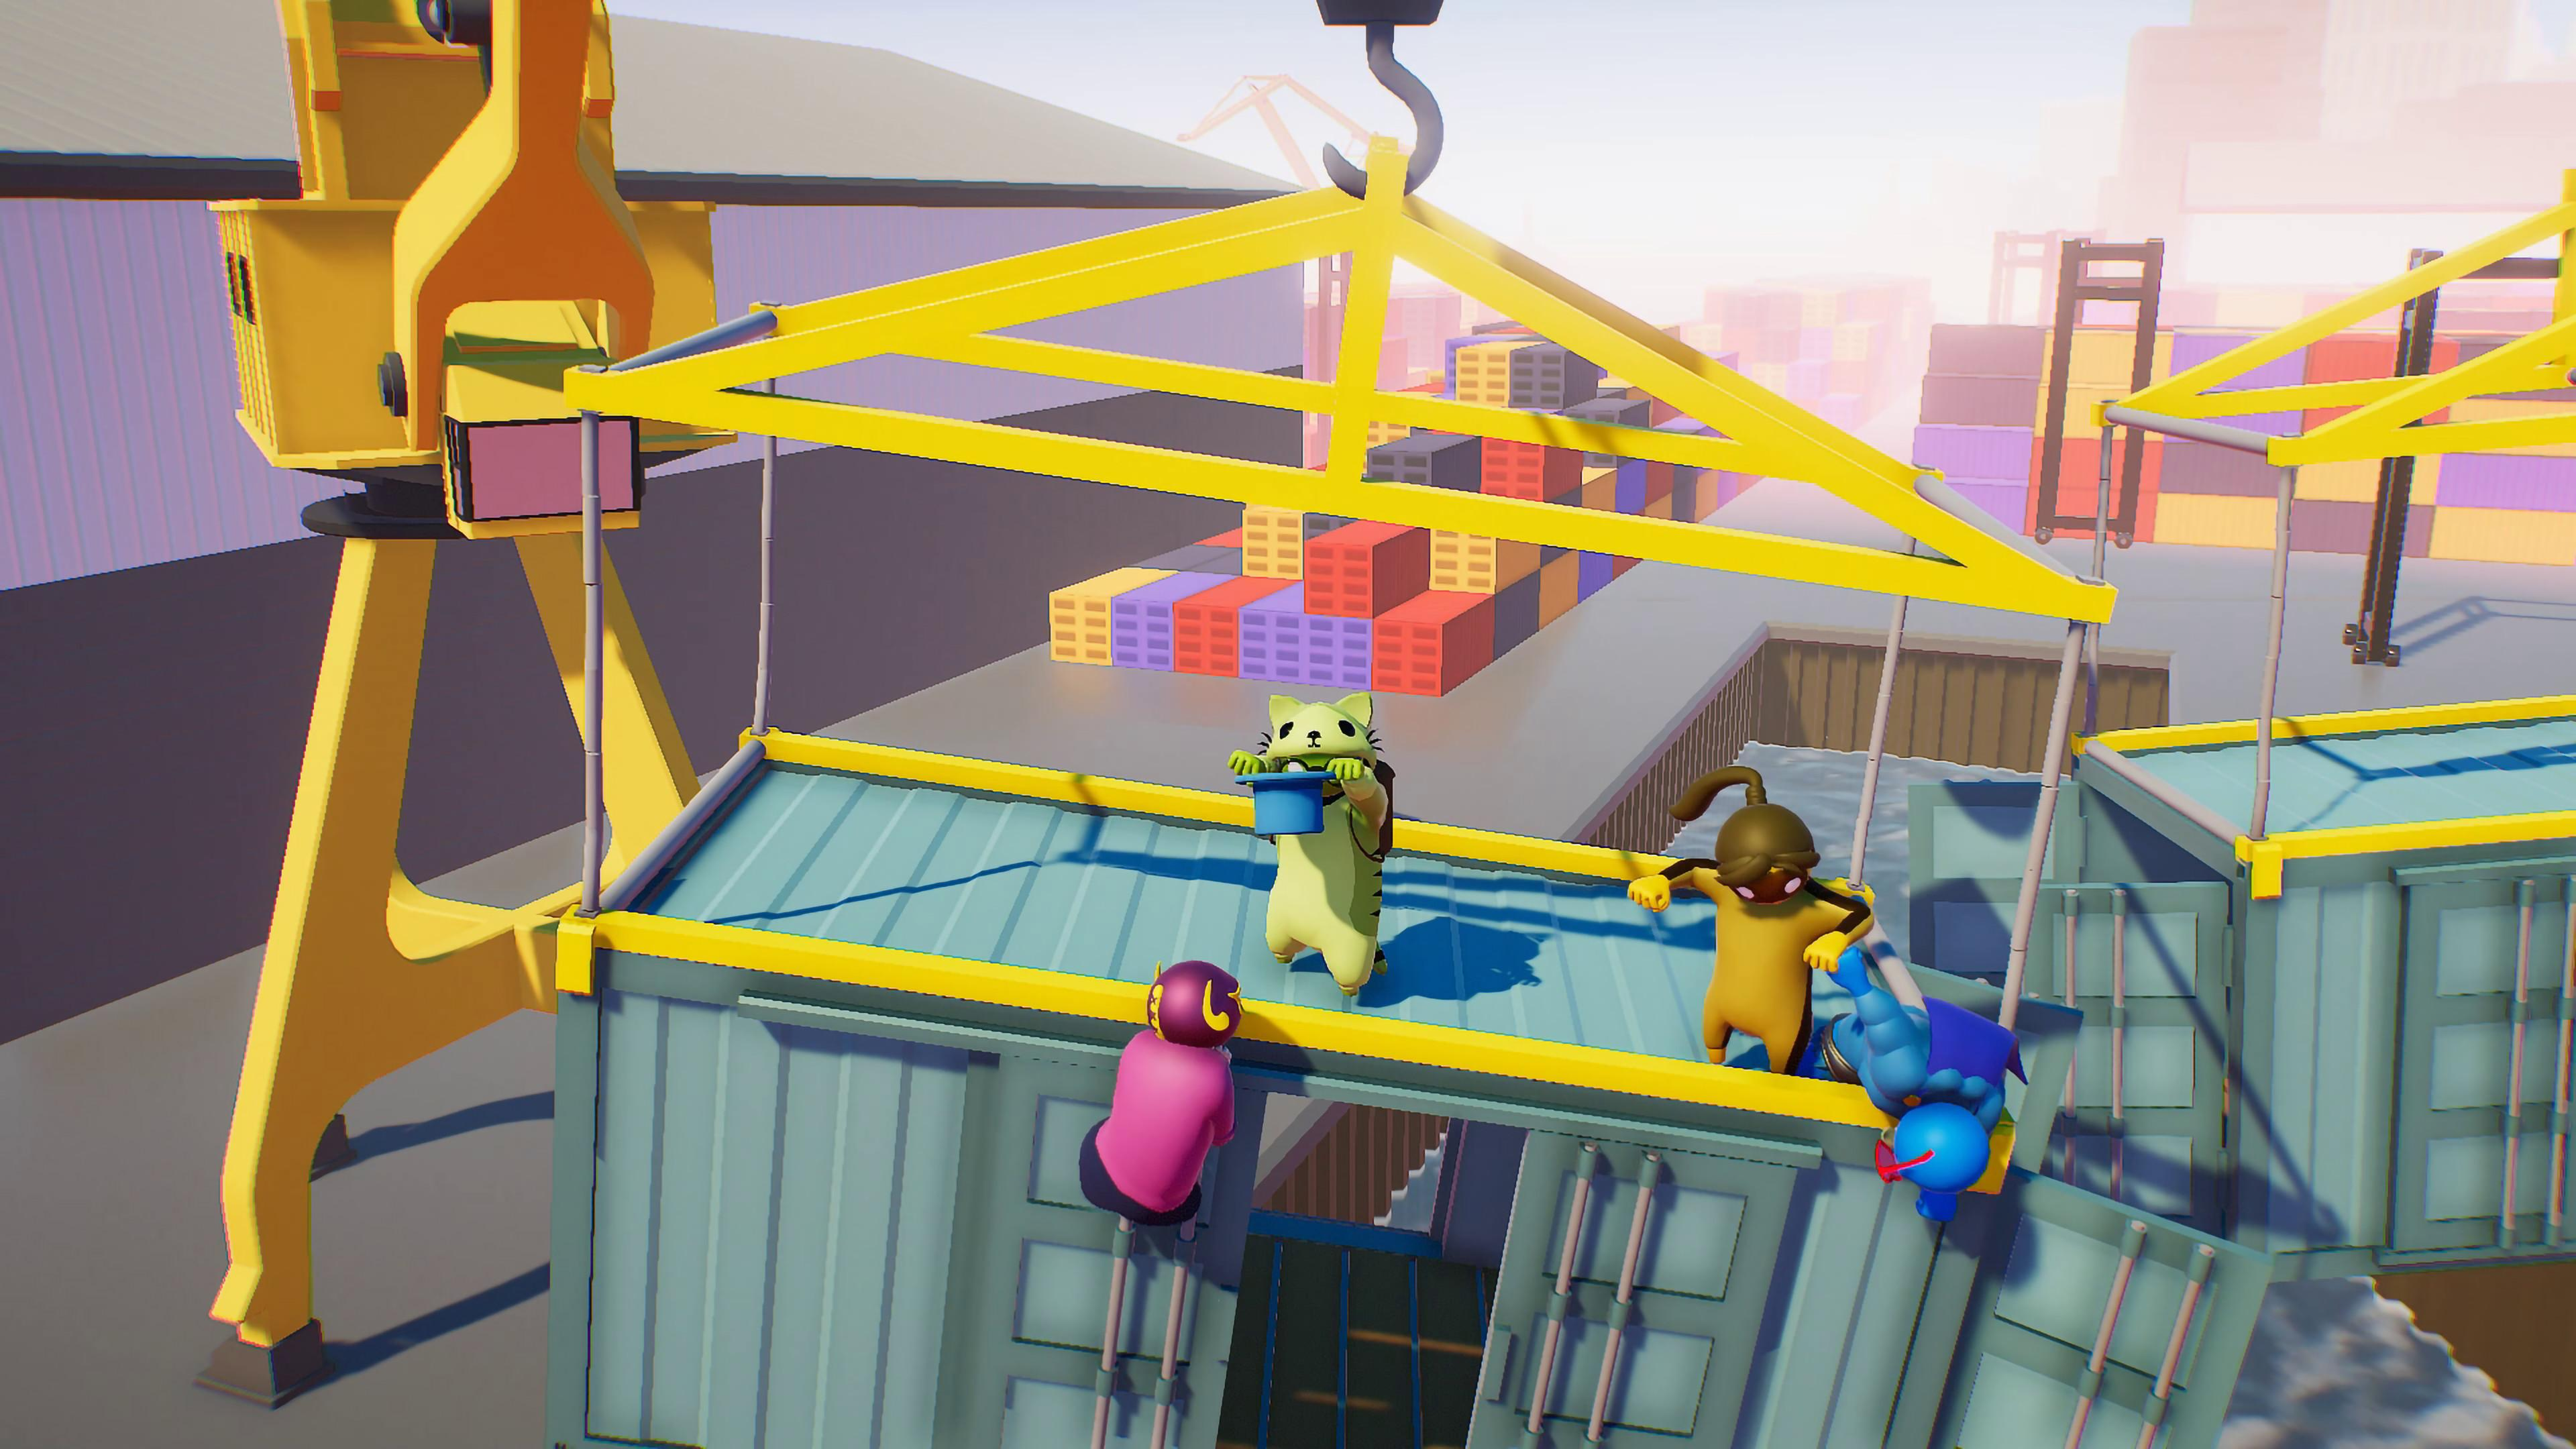 Gang Beasts is a fun and chaotic multiplayer brawler that's perfect for parties with friends